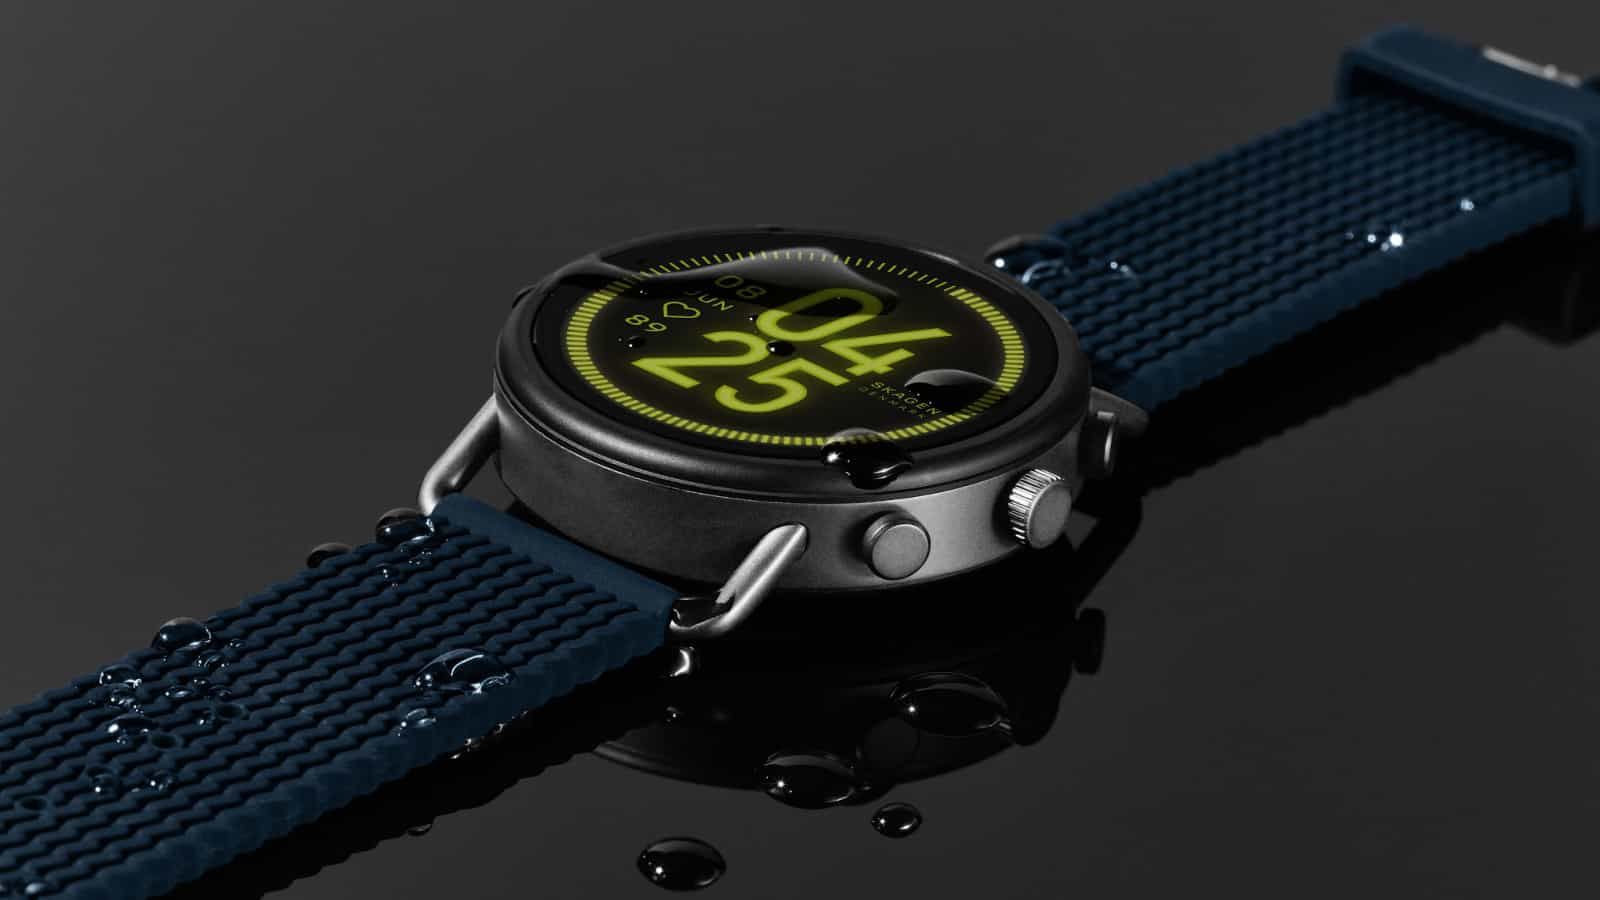 SKAGEN Falster 3 Wear OS Watch 1